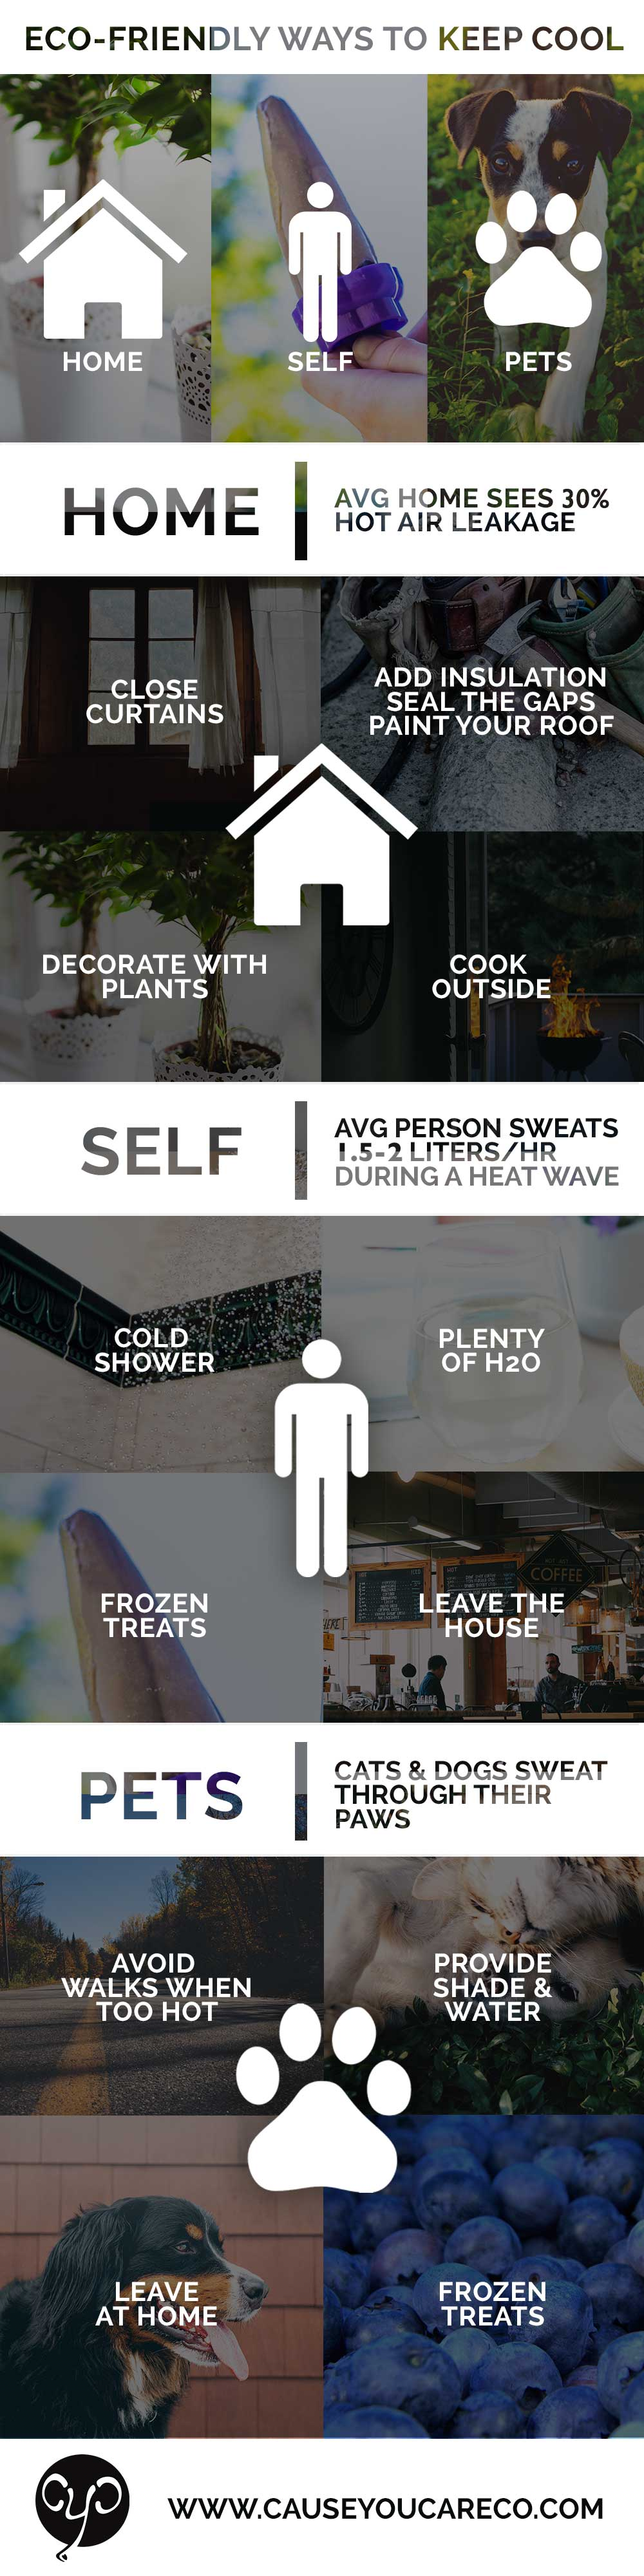 Eco-Friendly Ways to Keep Cool | Cause You Care